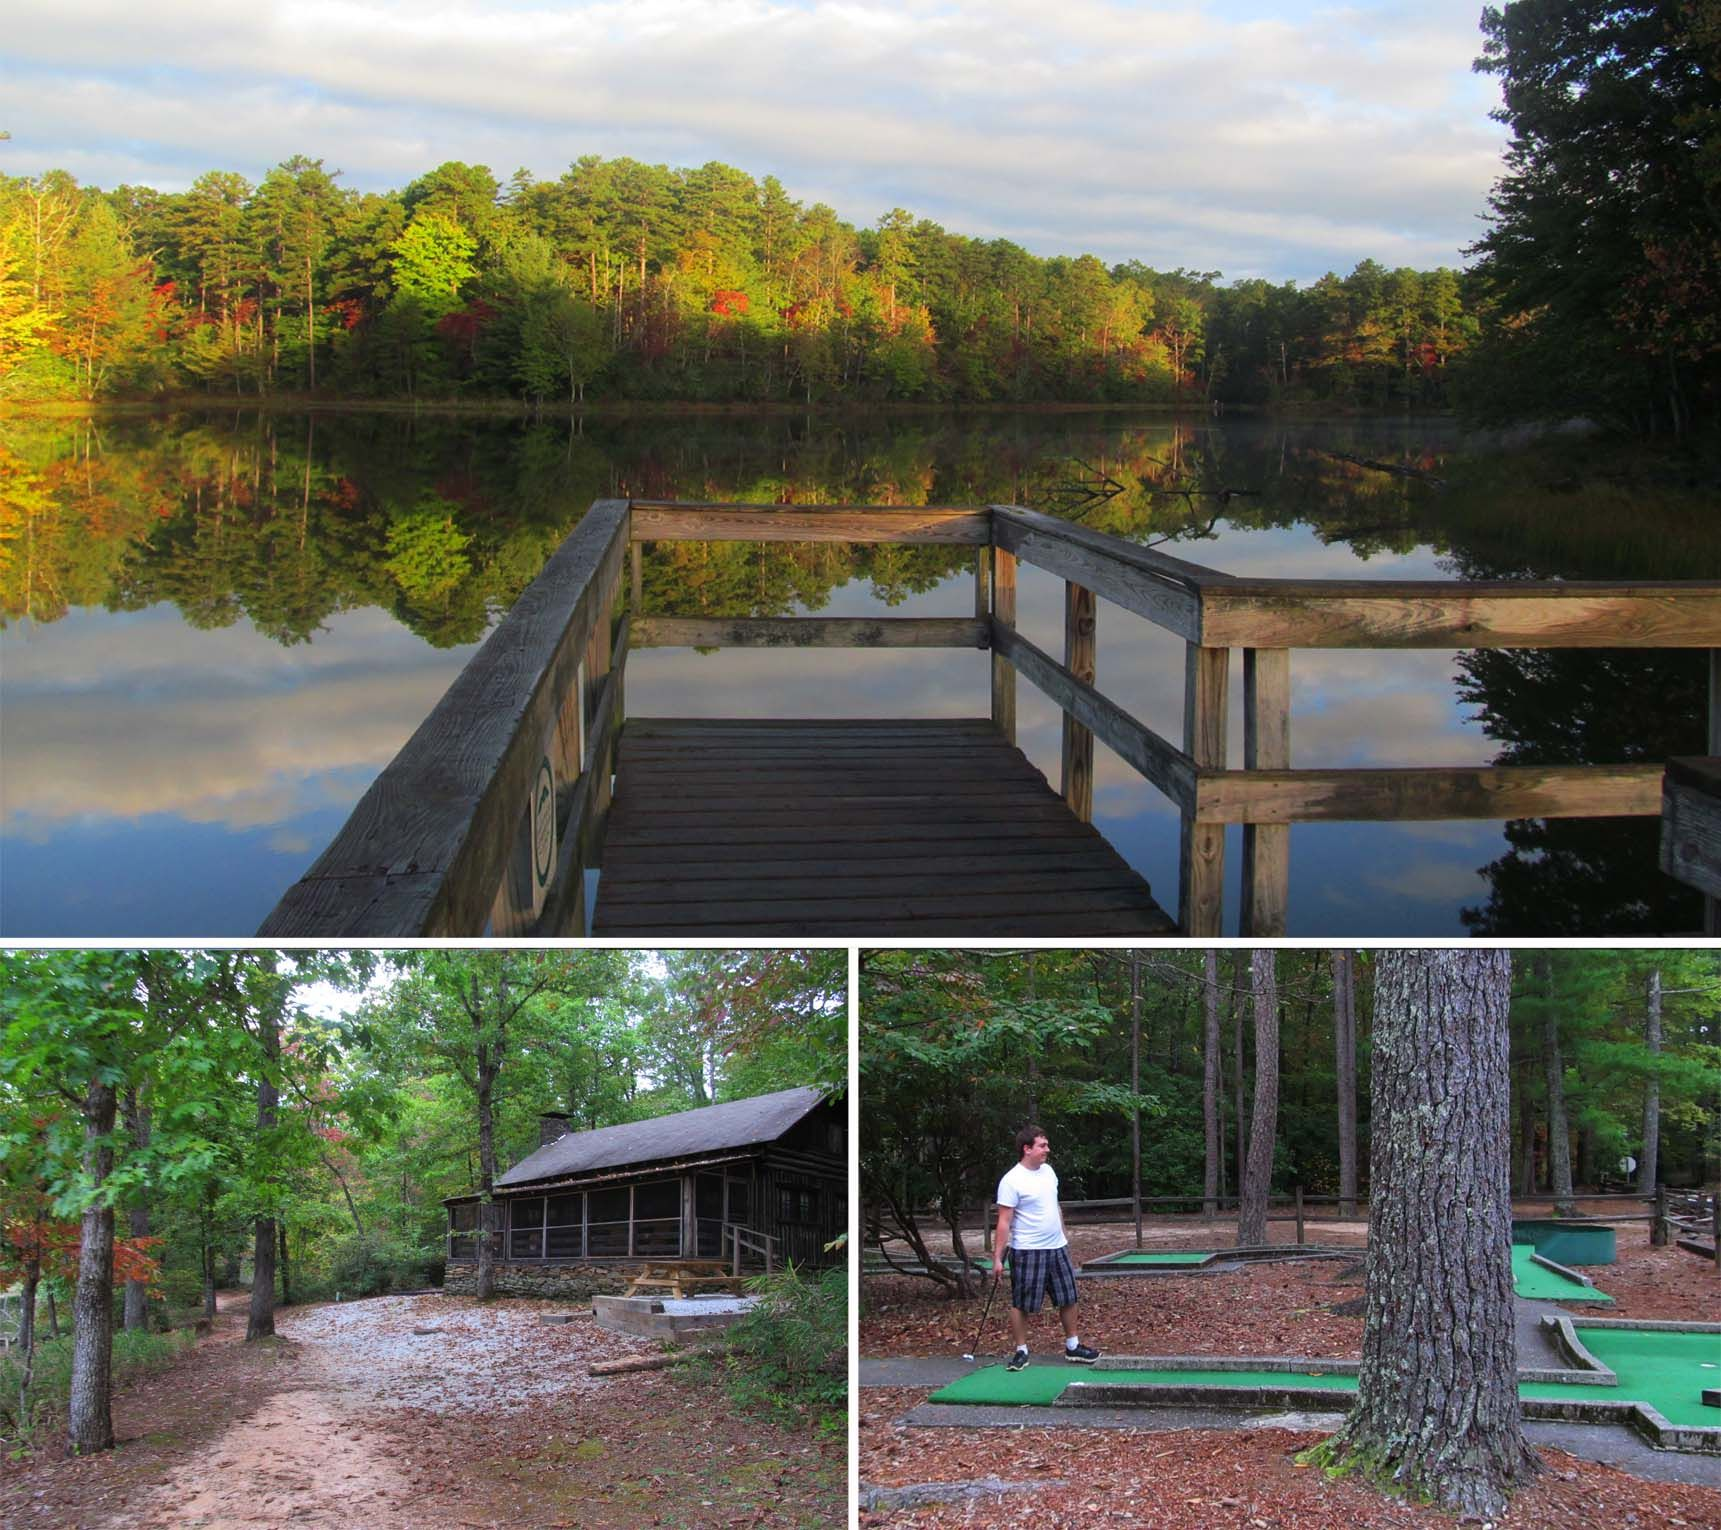 Camping At Huntington Beach State Park: Best Place For Camping, Relaxing, And Spending Time With